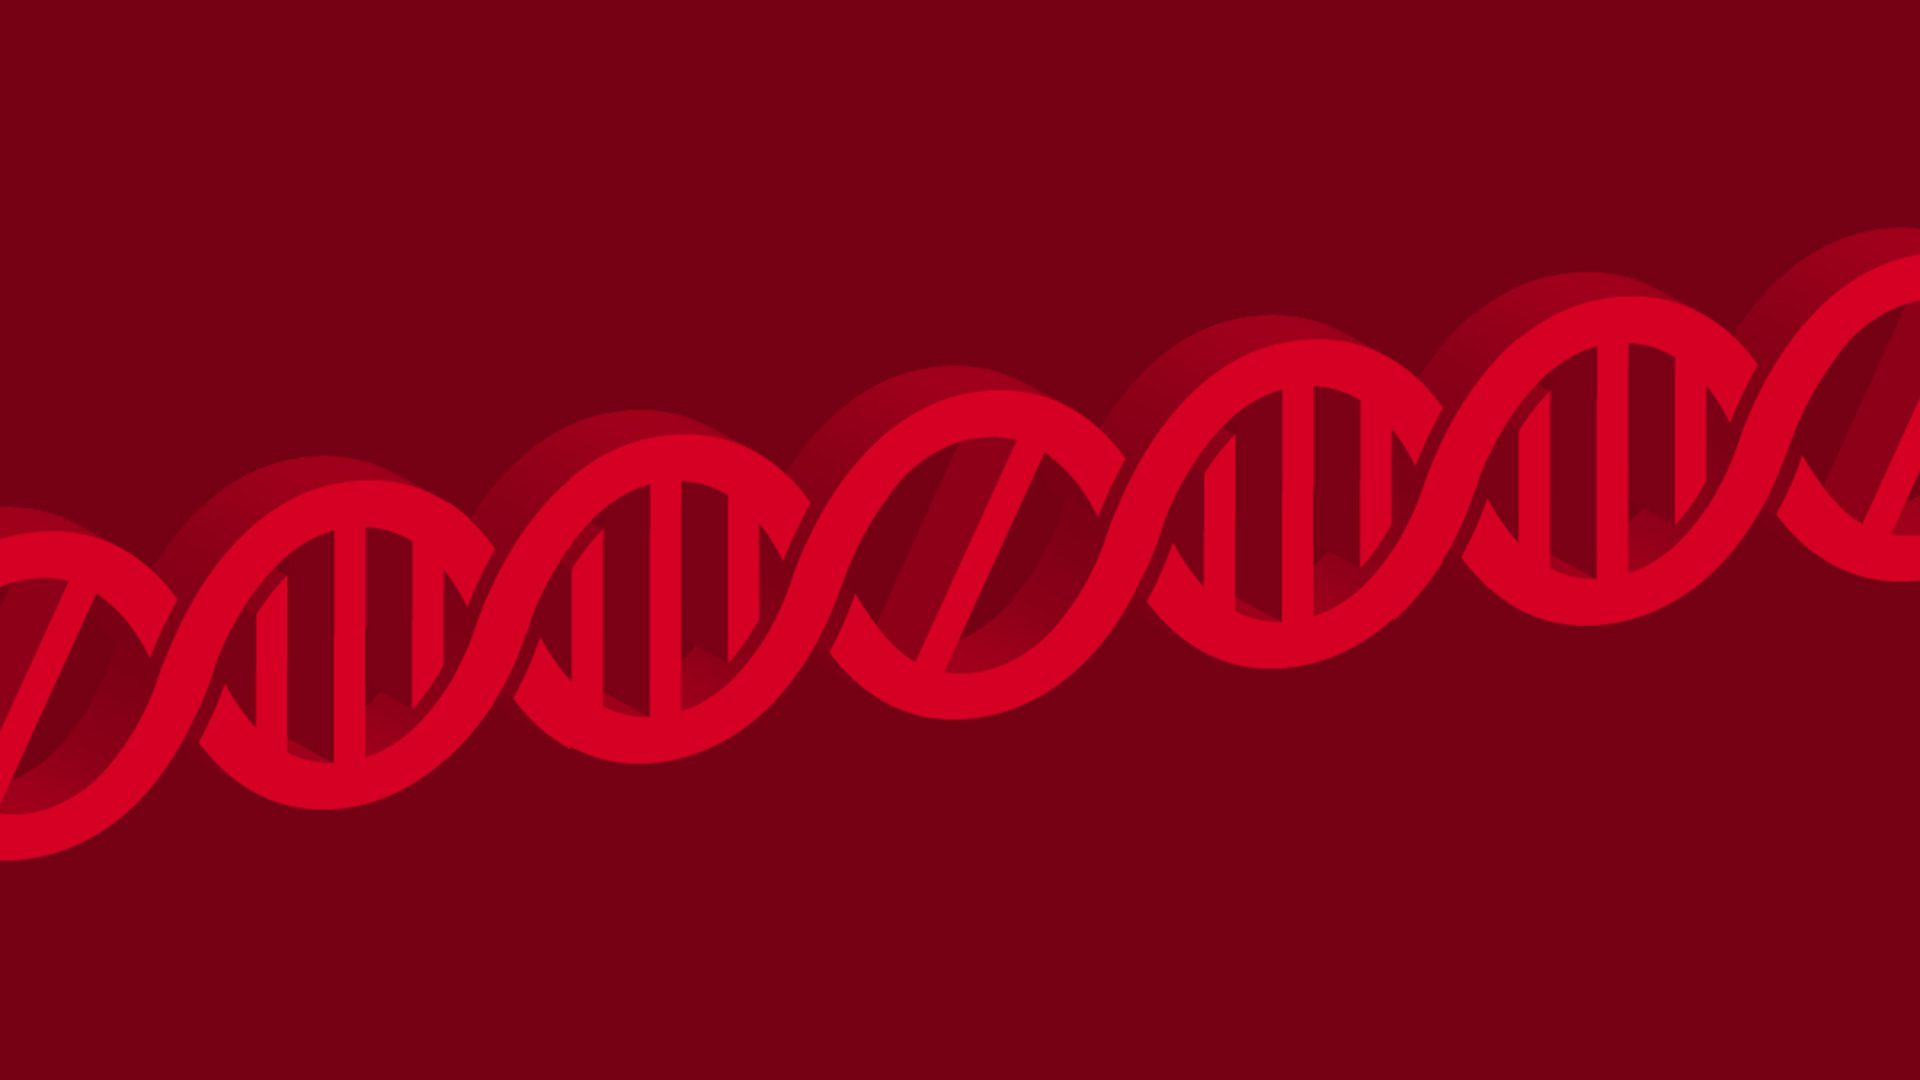 Illustration of a DNA strand with the middle link having a no-go sign